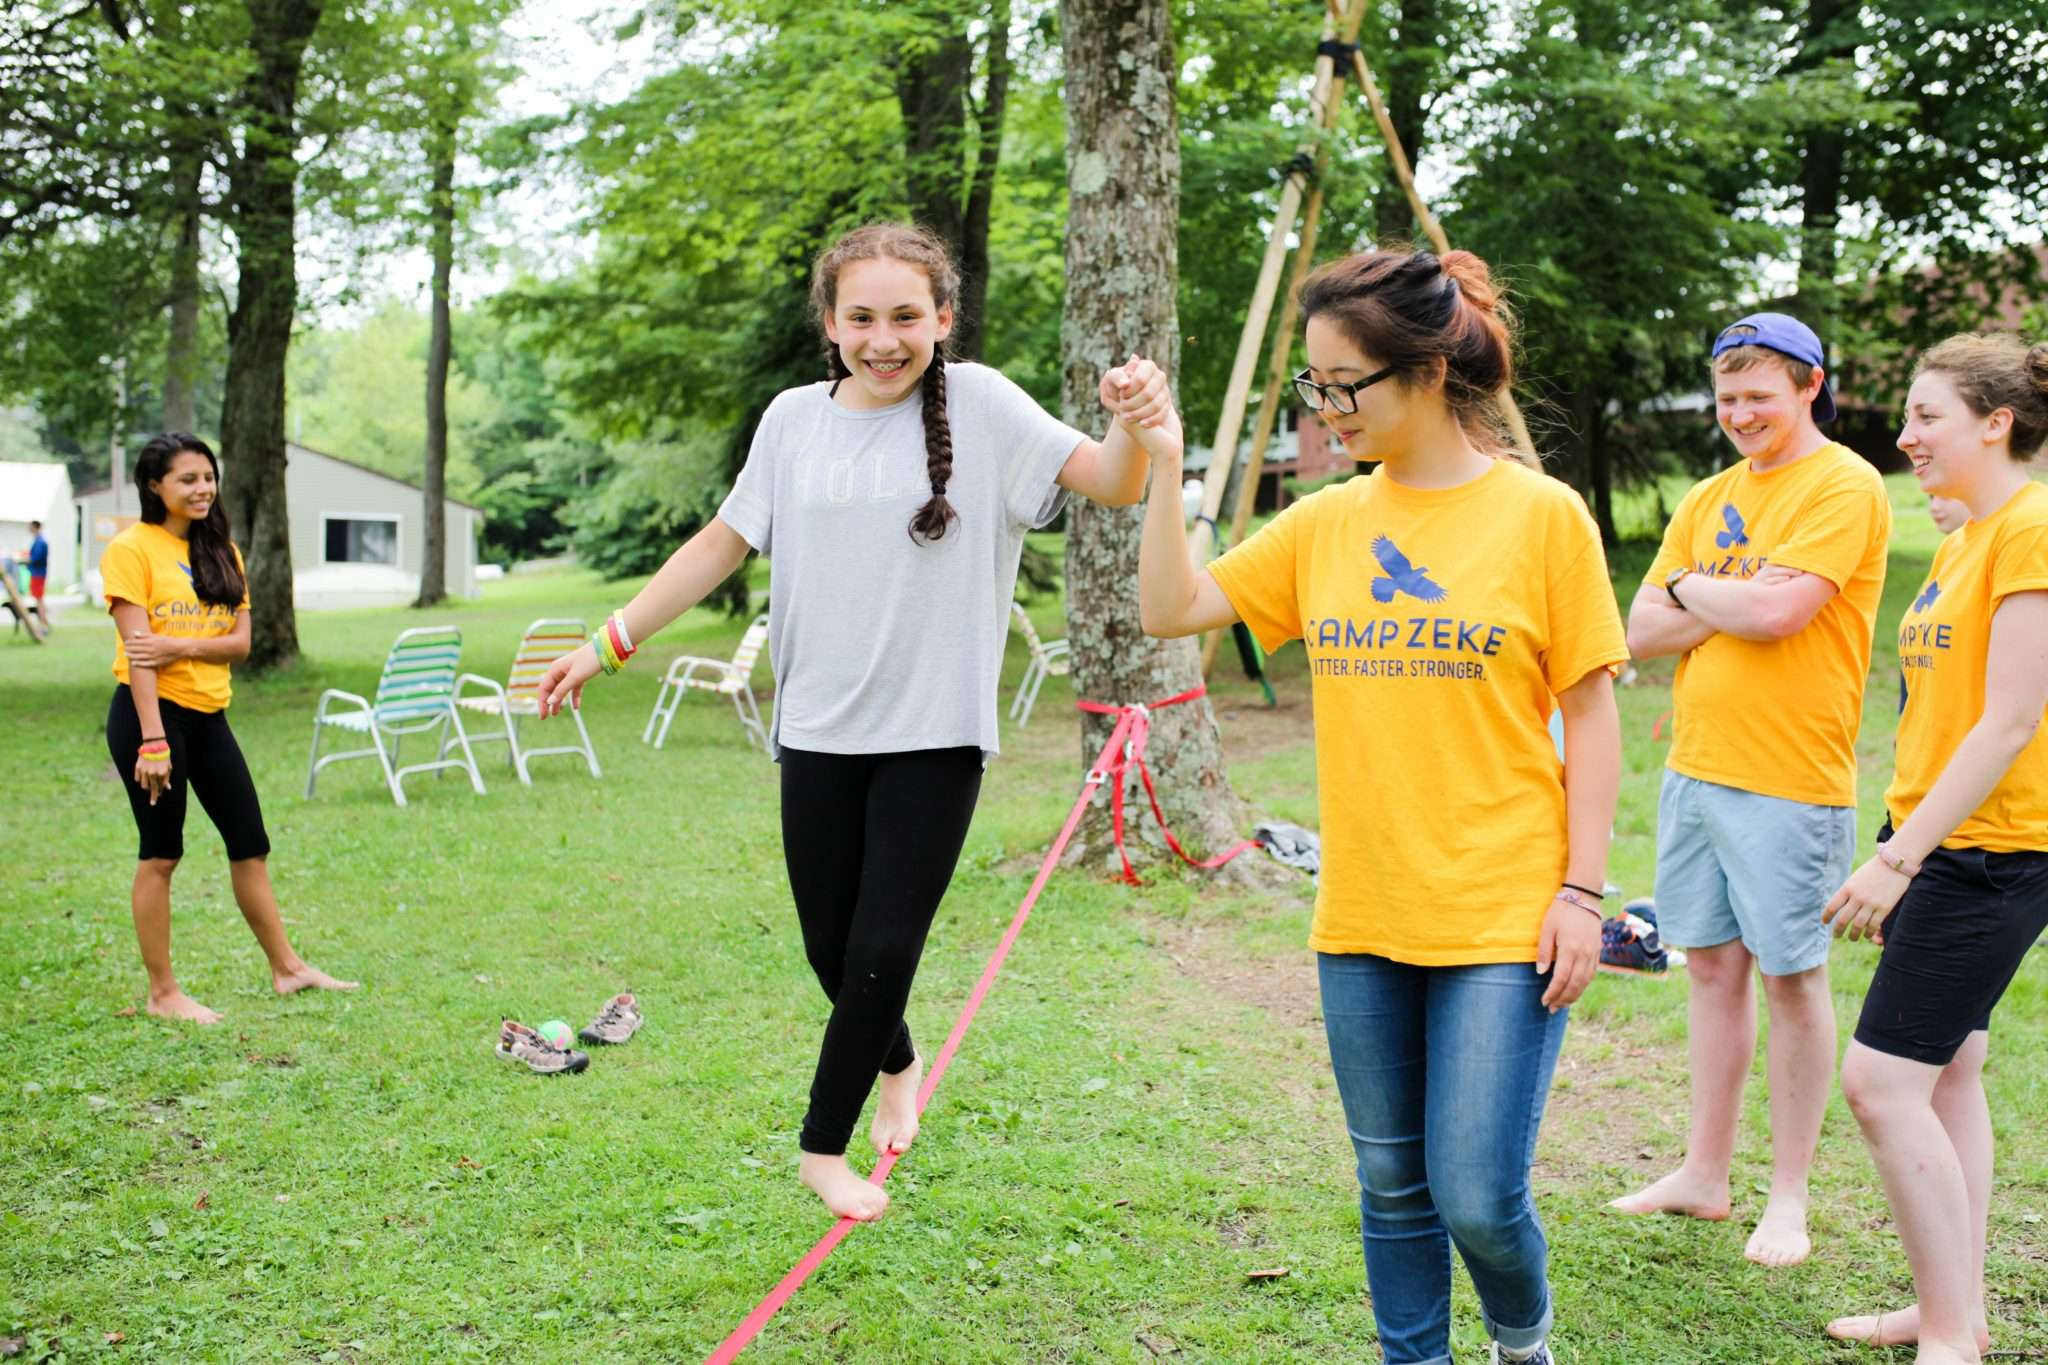 Girl practising the tightrope helped by a counselor